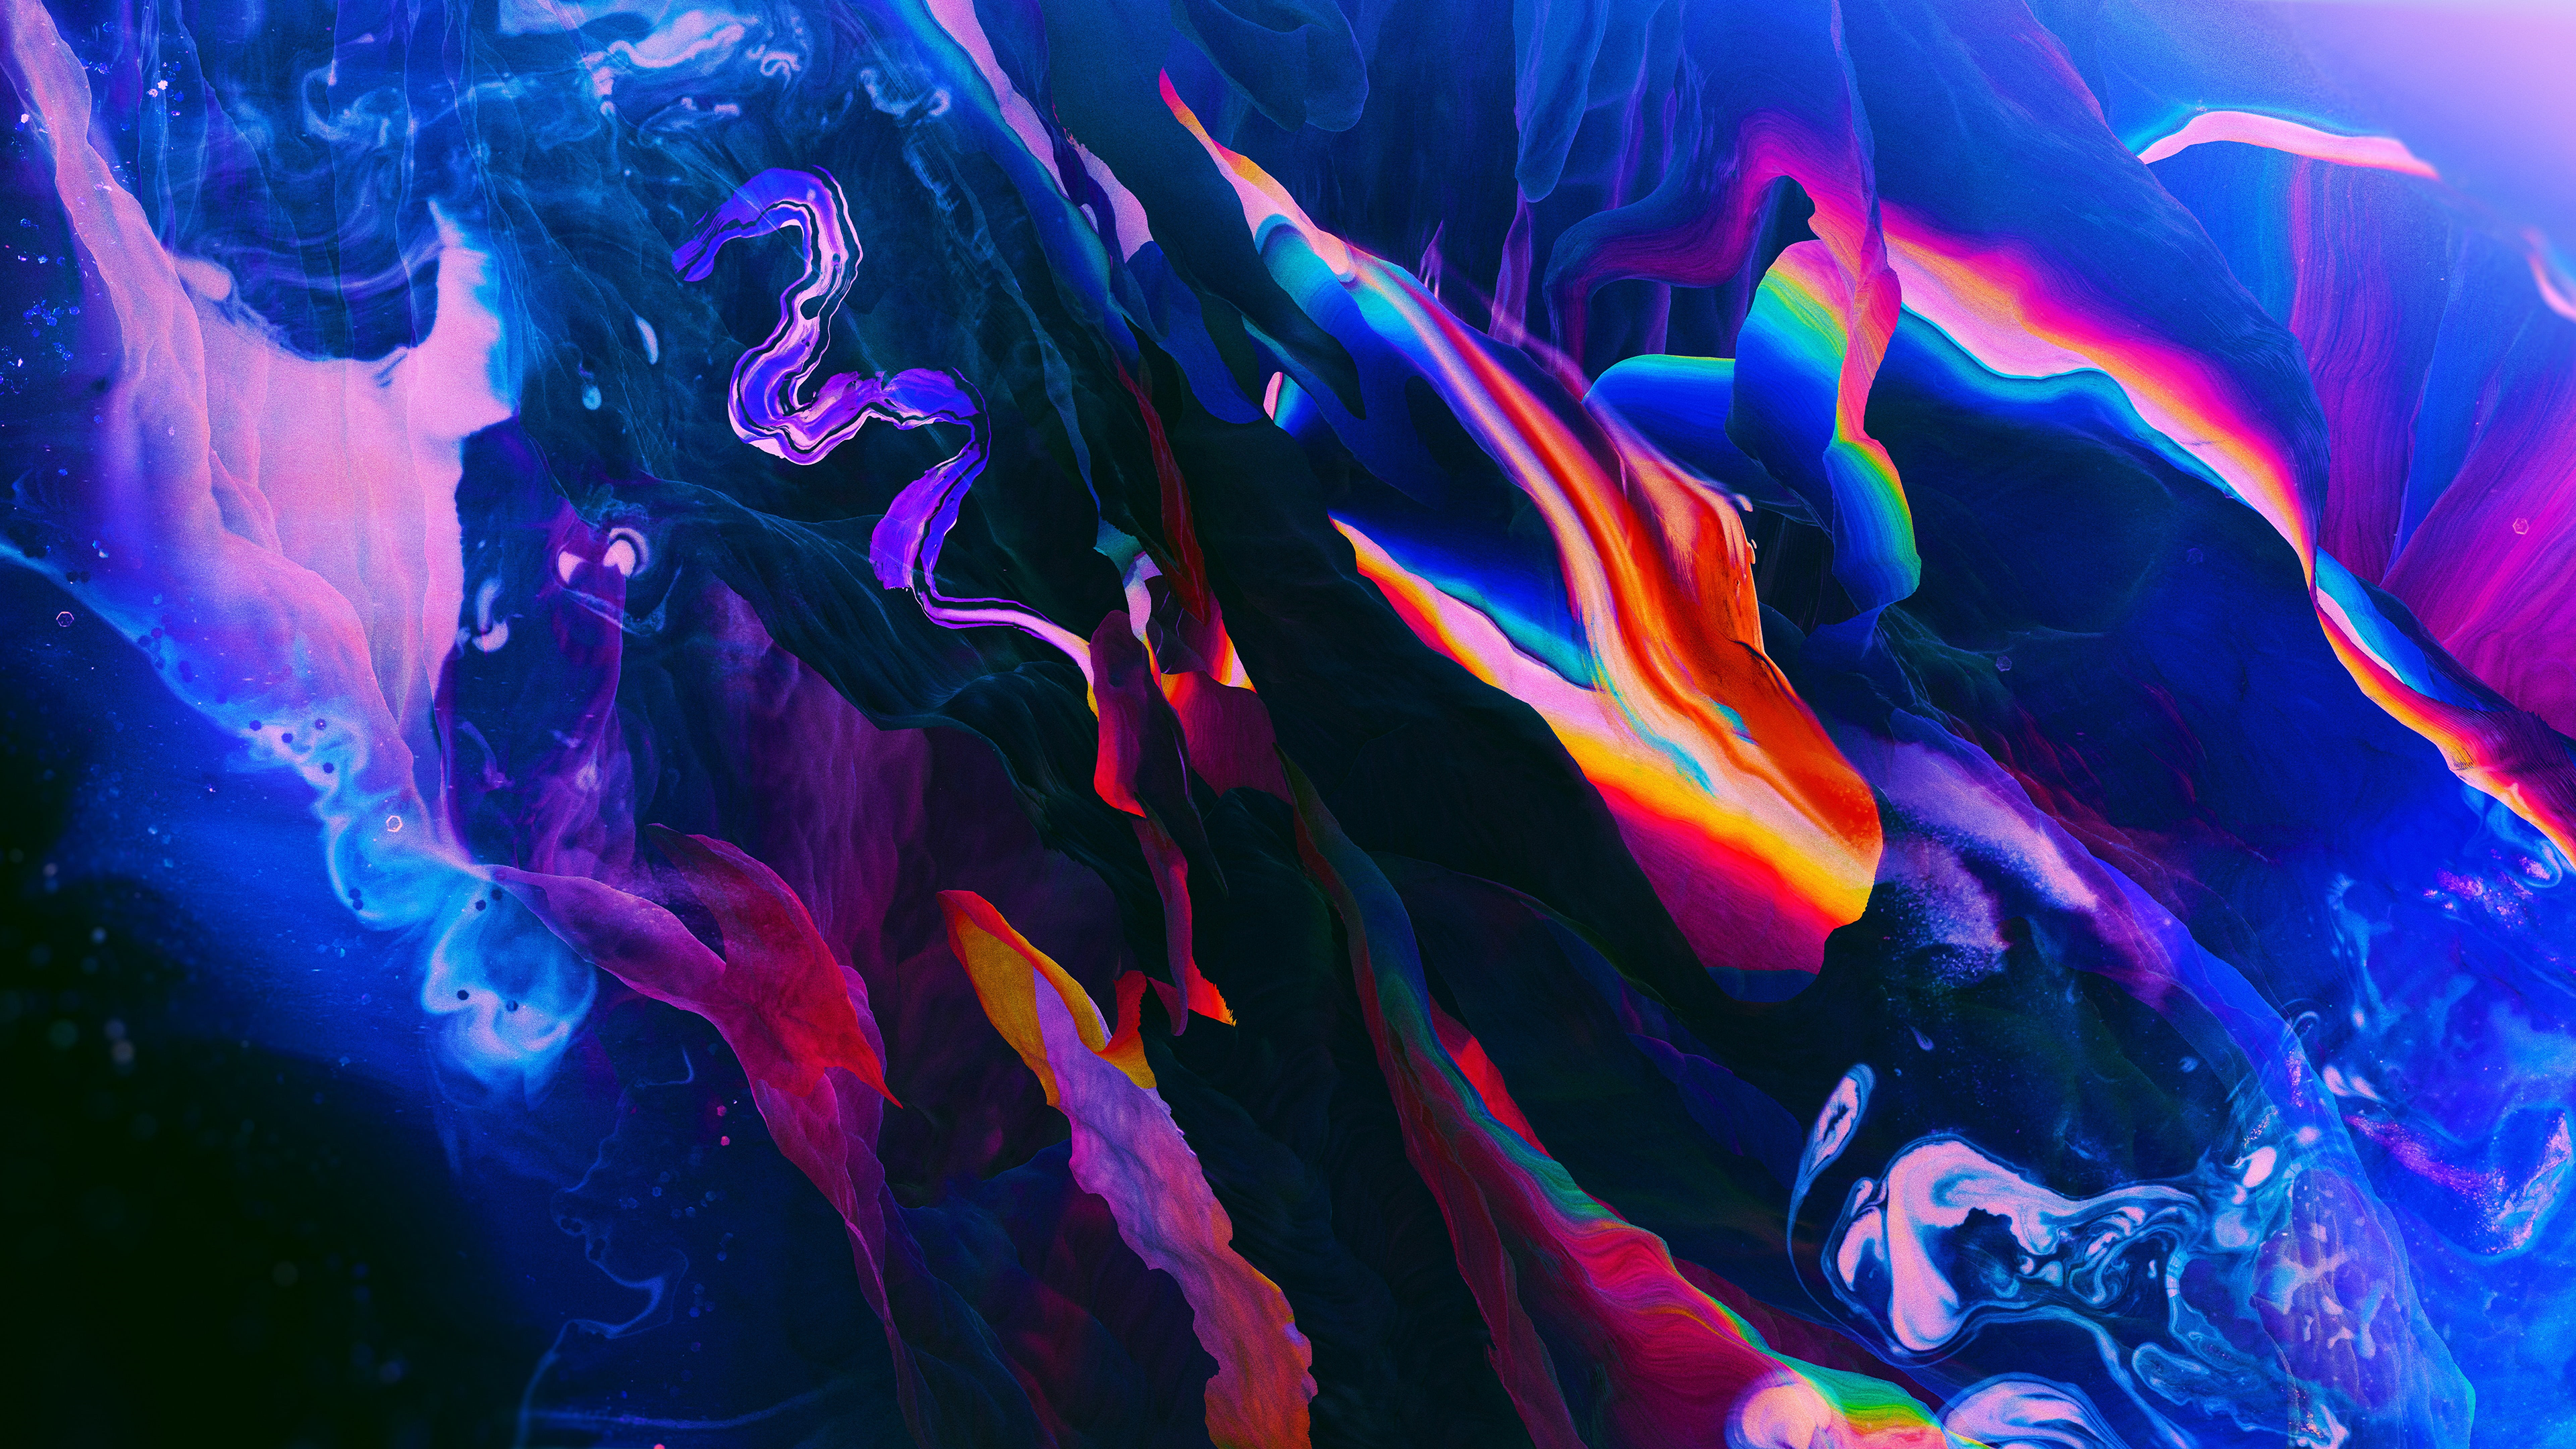 General 3840x2160 abstract colorful digital art